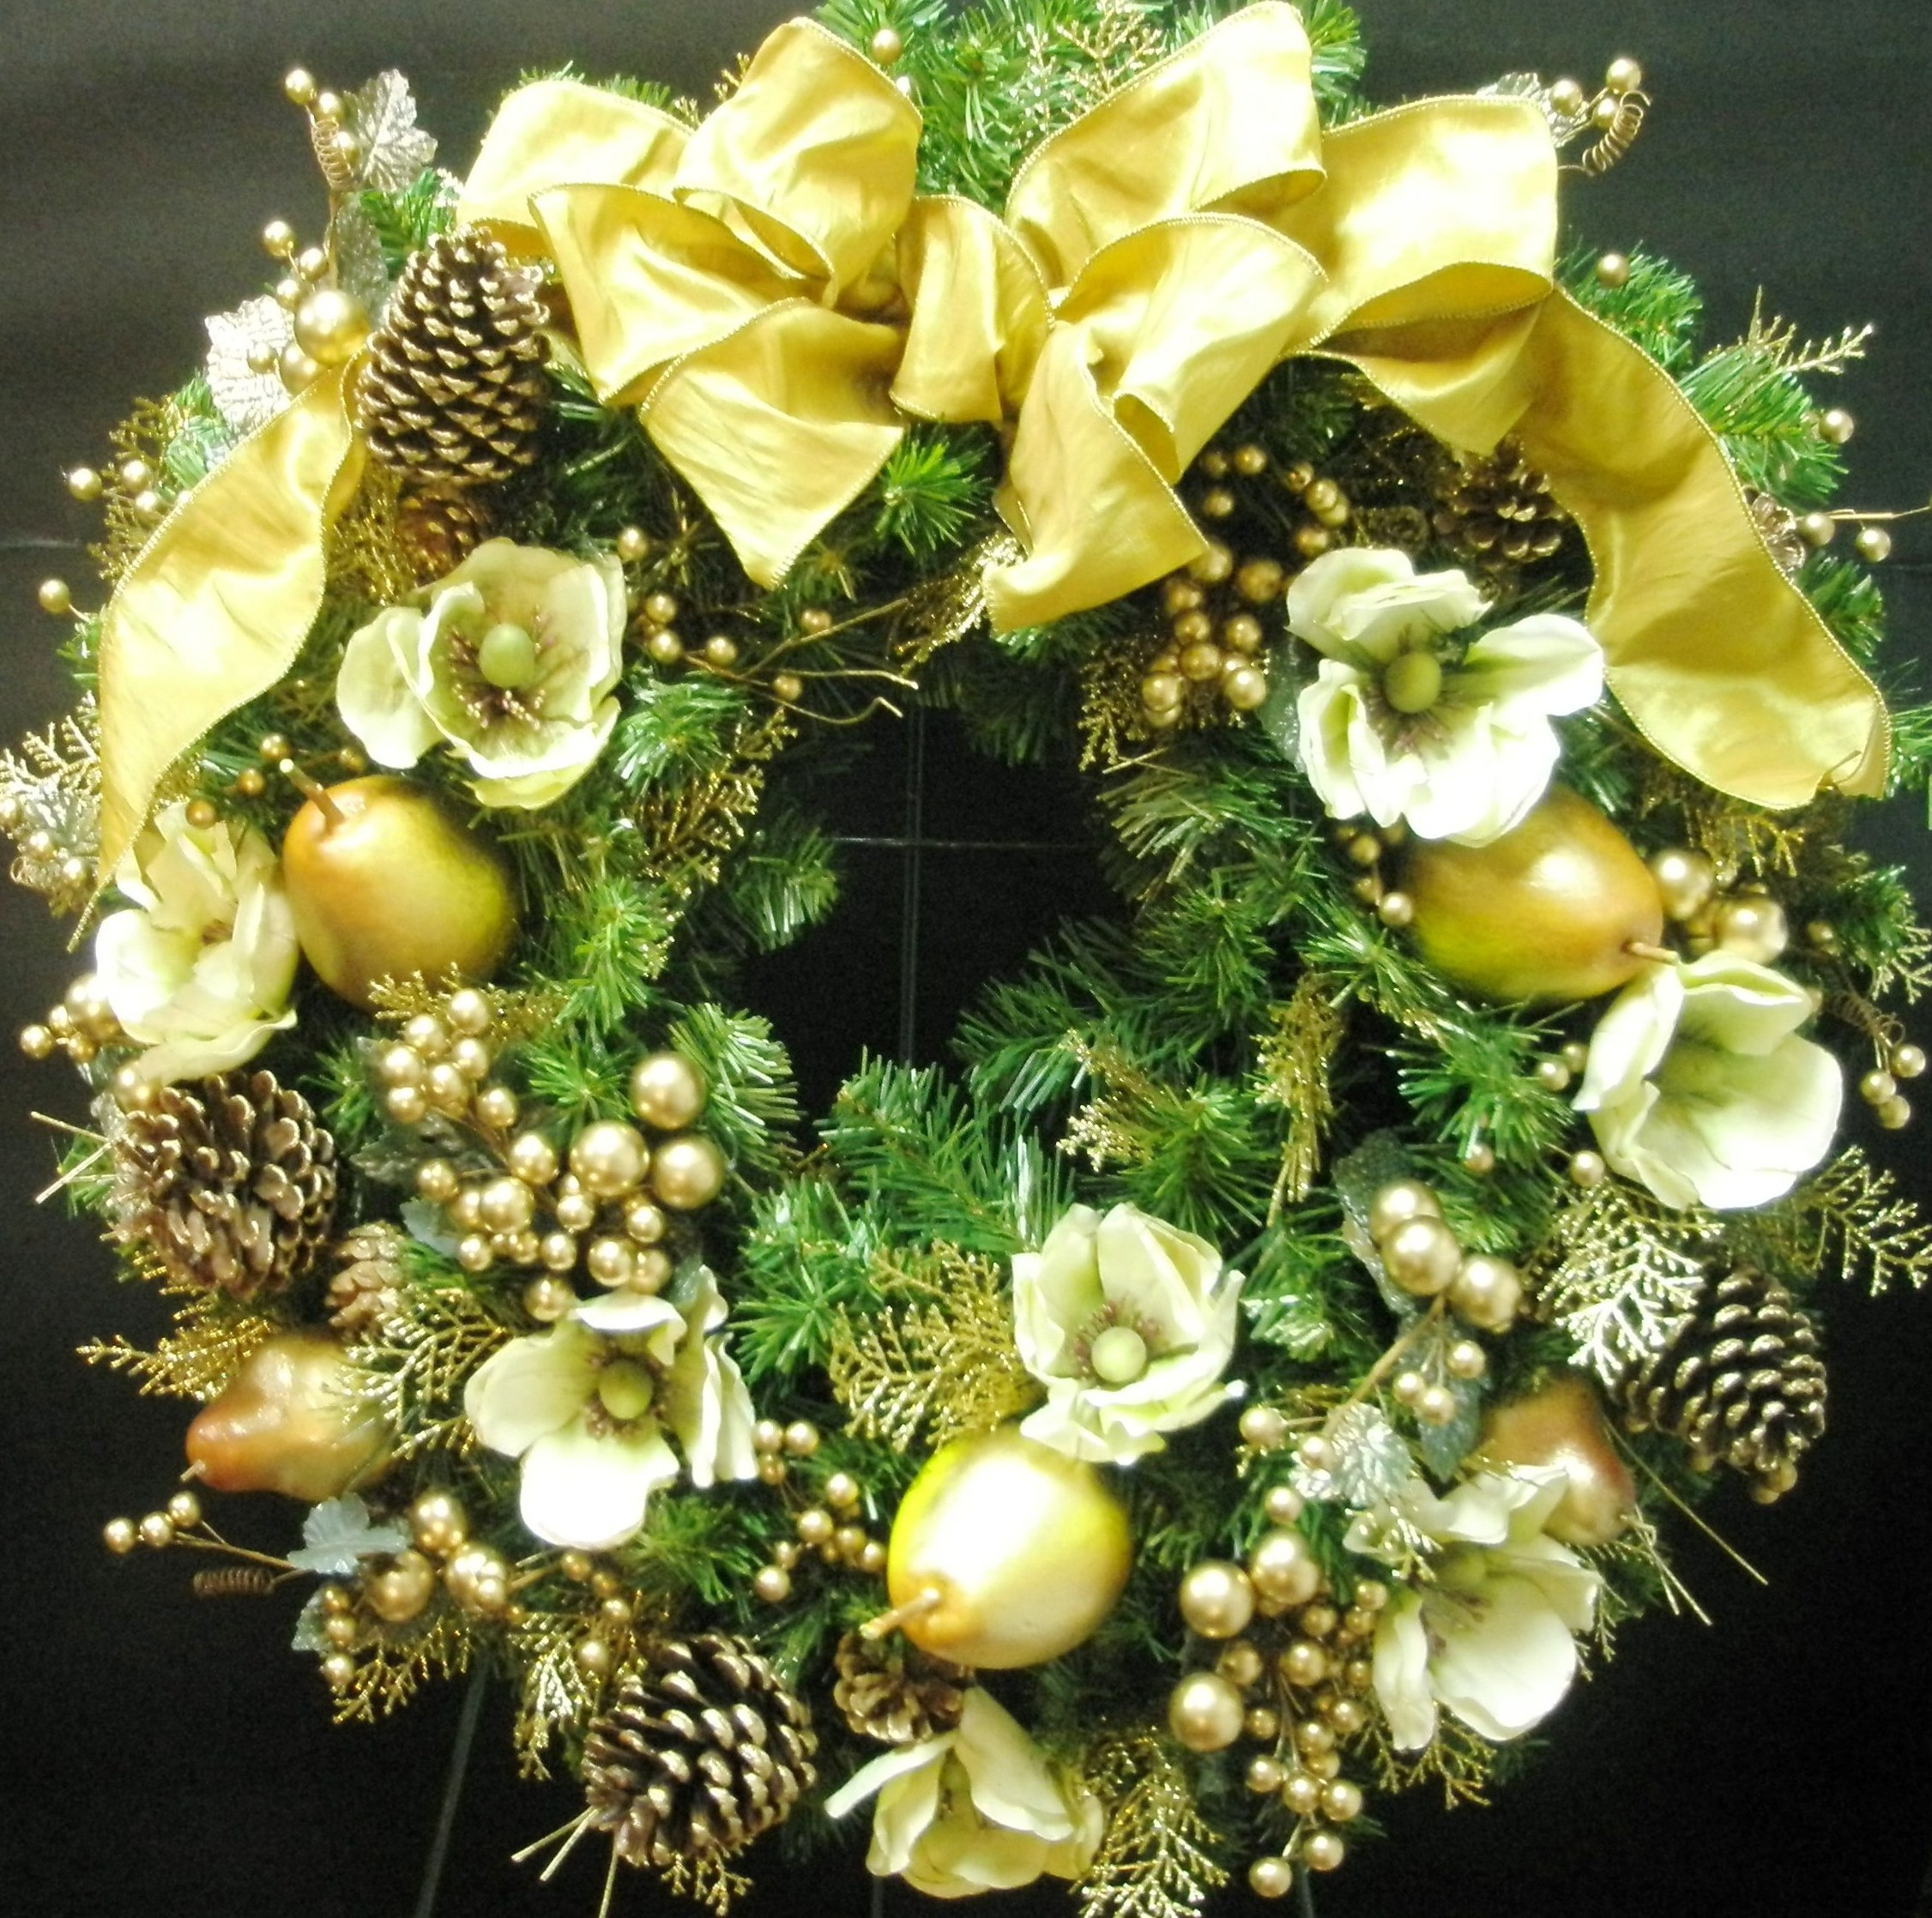 Personalized Christmas Wreaths From Blooming Floral Design